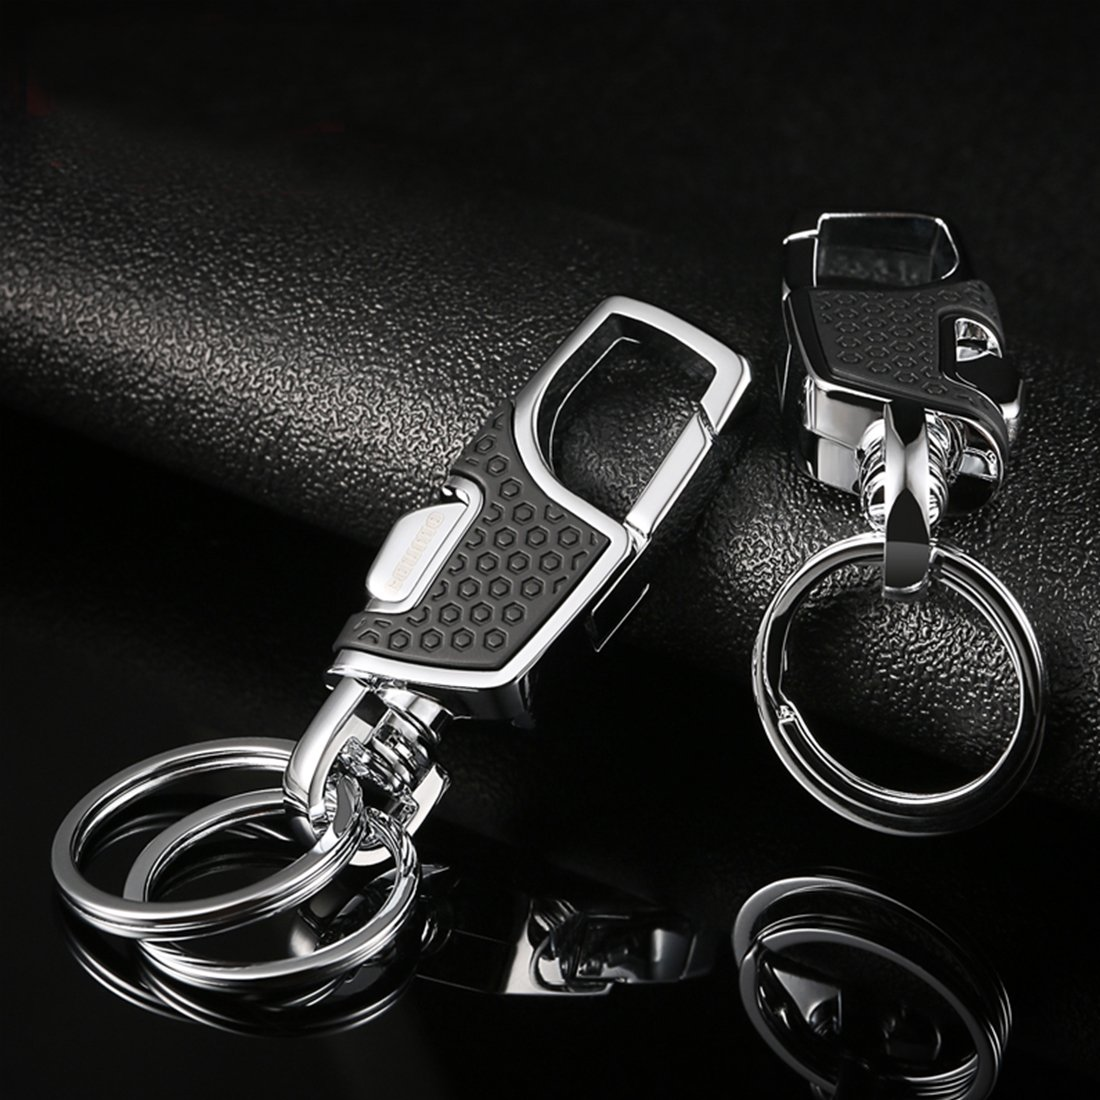 Heavy Duty Car Keychain for Men and Women Lancher Key Chain with Black 2 Extra Key Rings and Gift Box